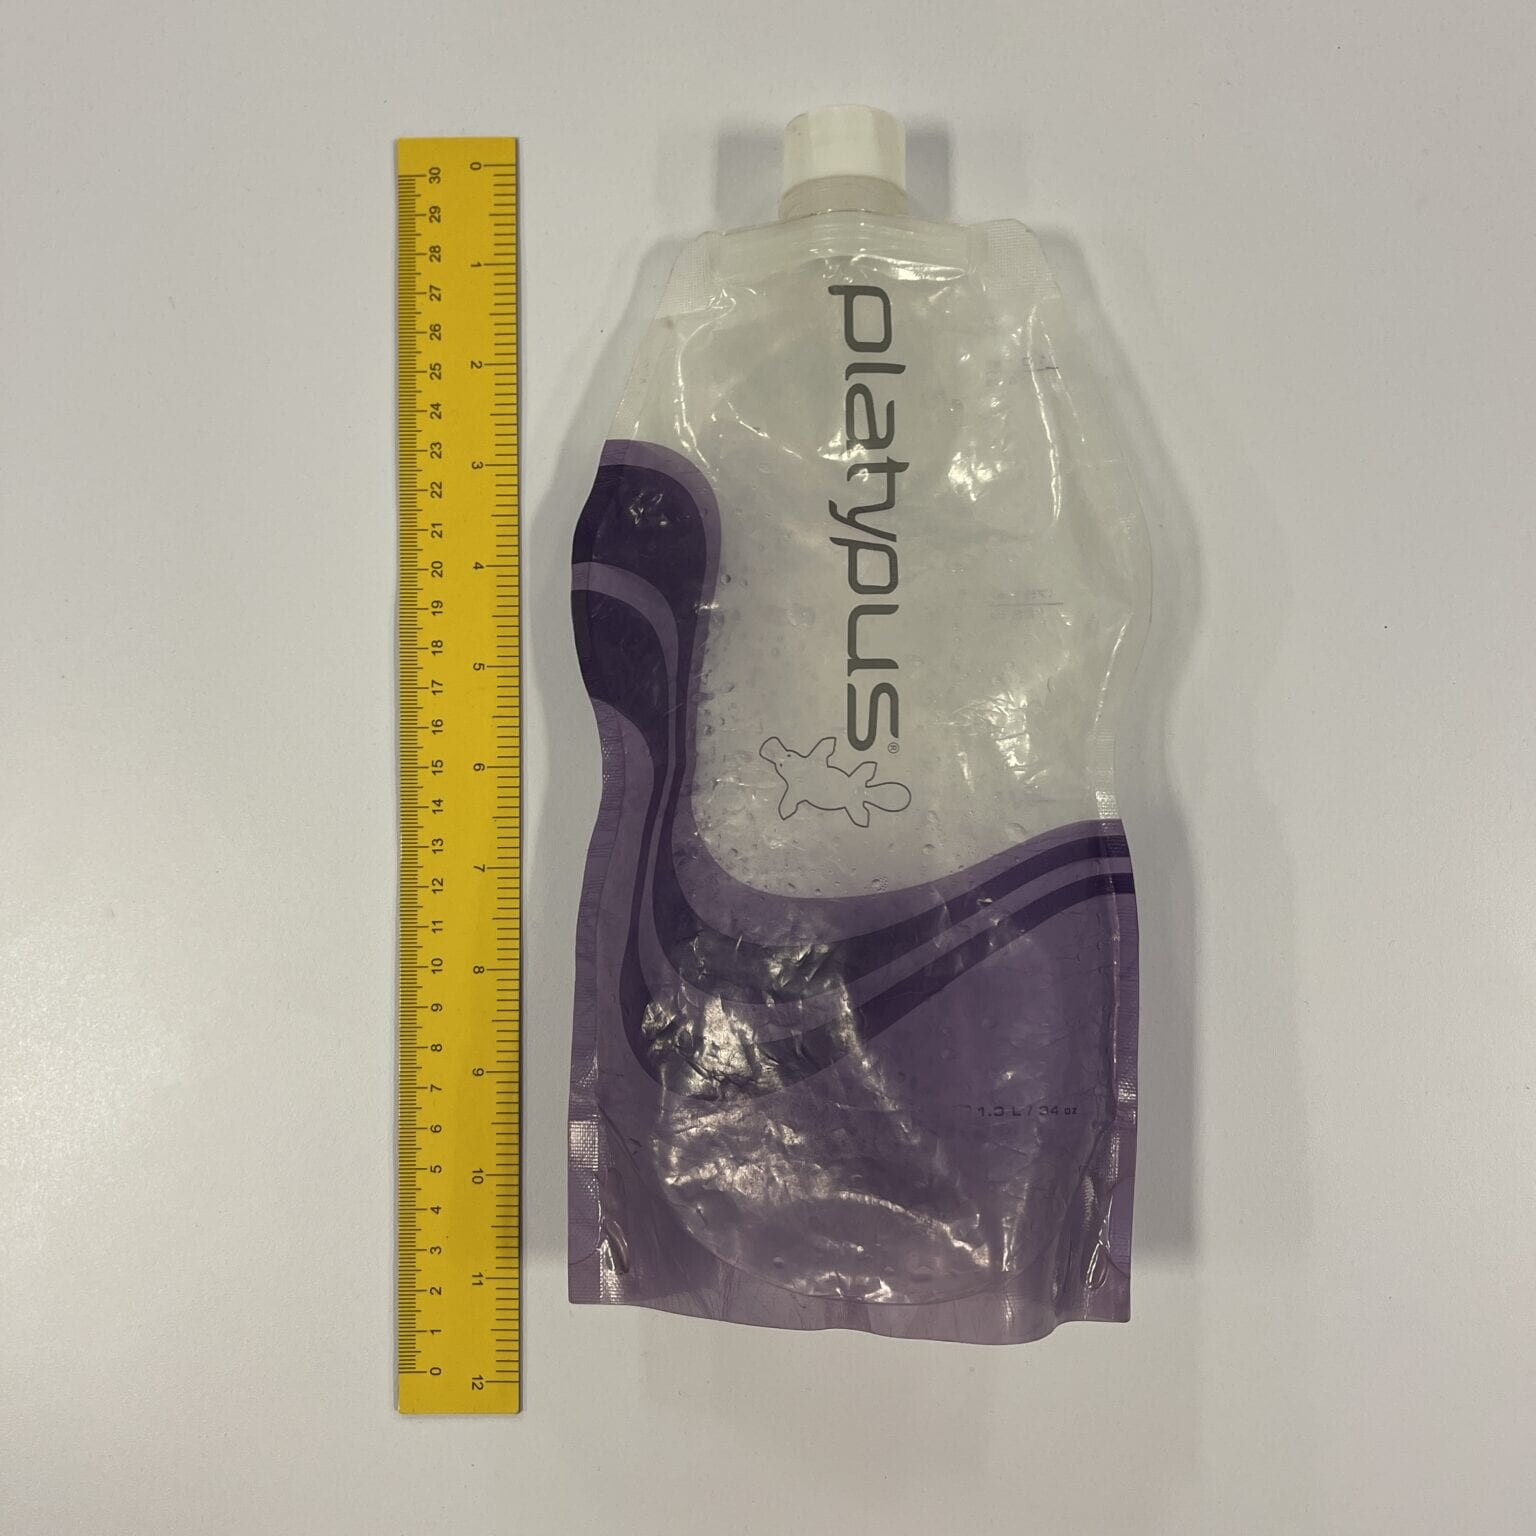 A Platypus water bottle or water bag next to a ruler.